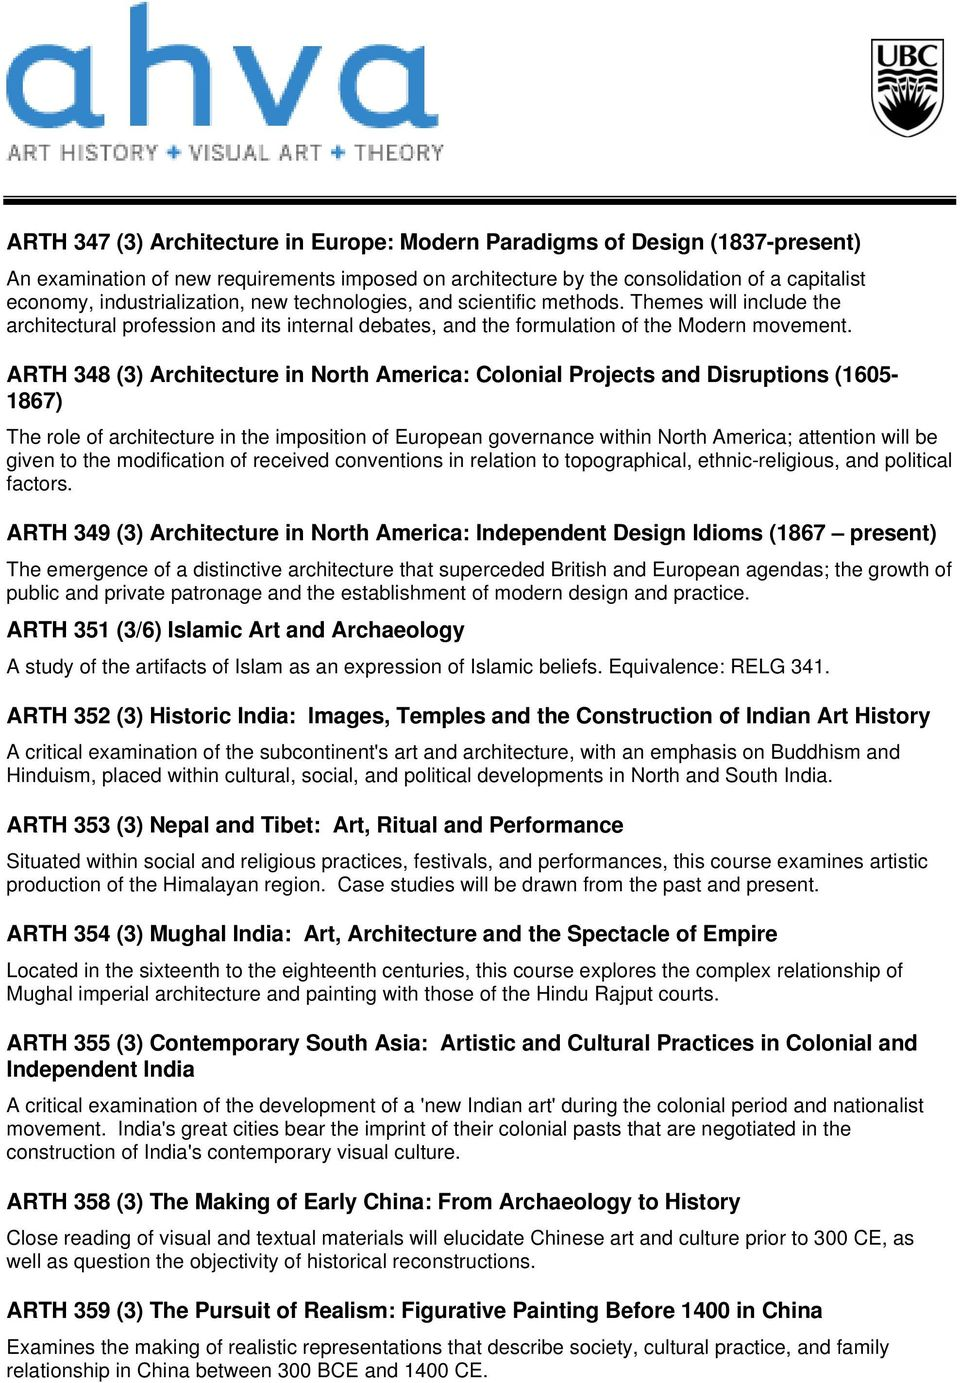 ARTH 348 (3) Architecture in North America: Colonial Projects and Disruptions (1605-1867) The role of architecture in the imposition of European governance within North America; attention will be